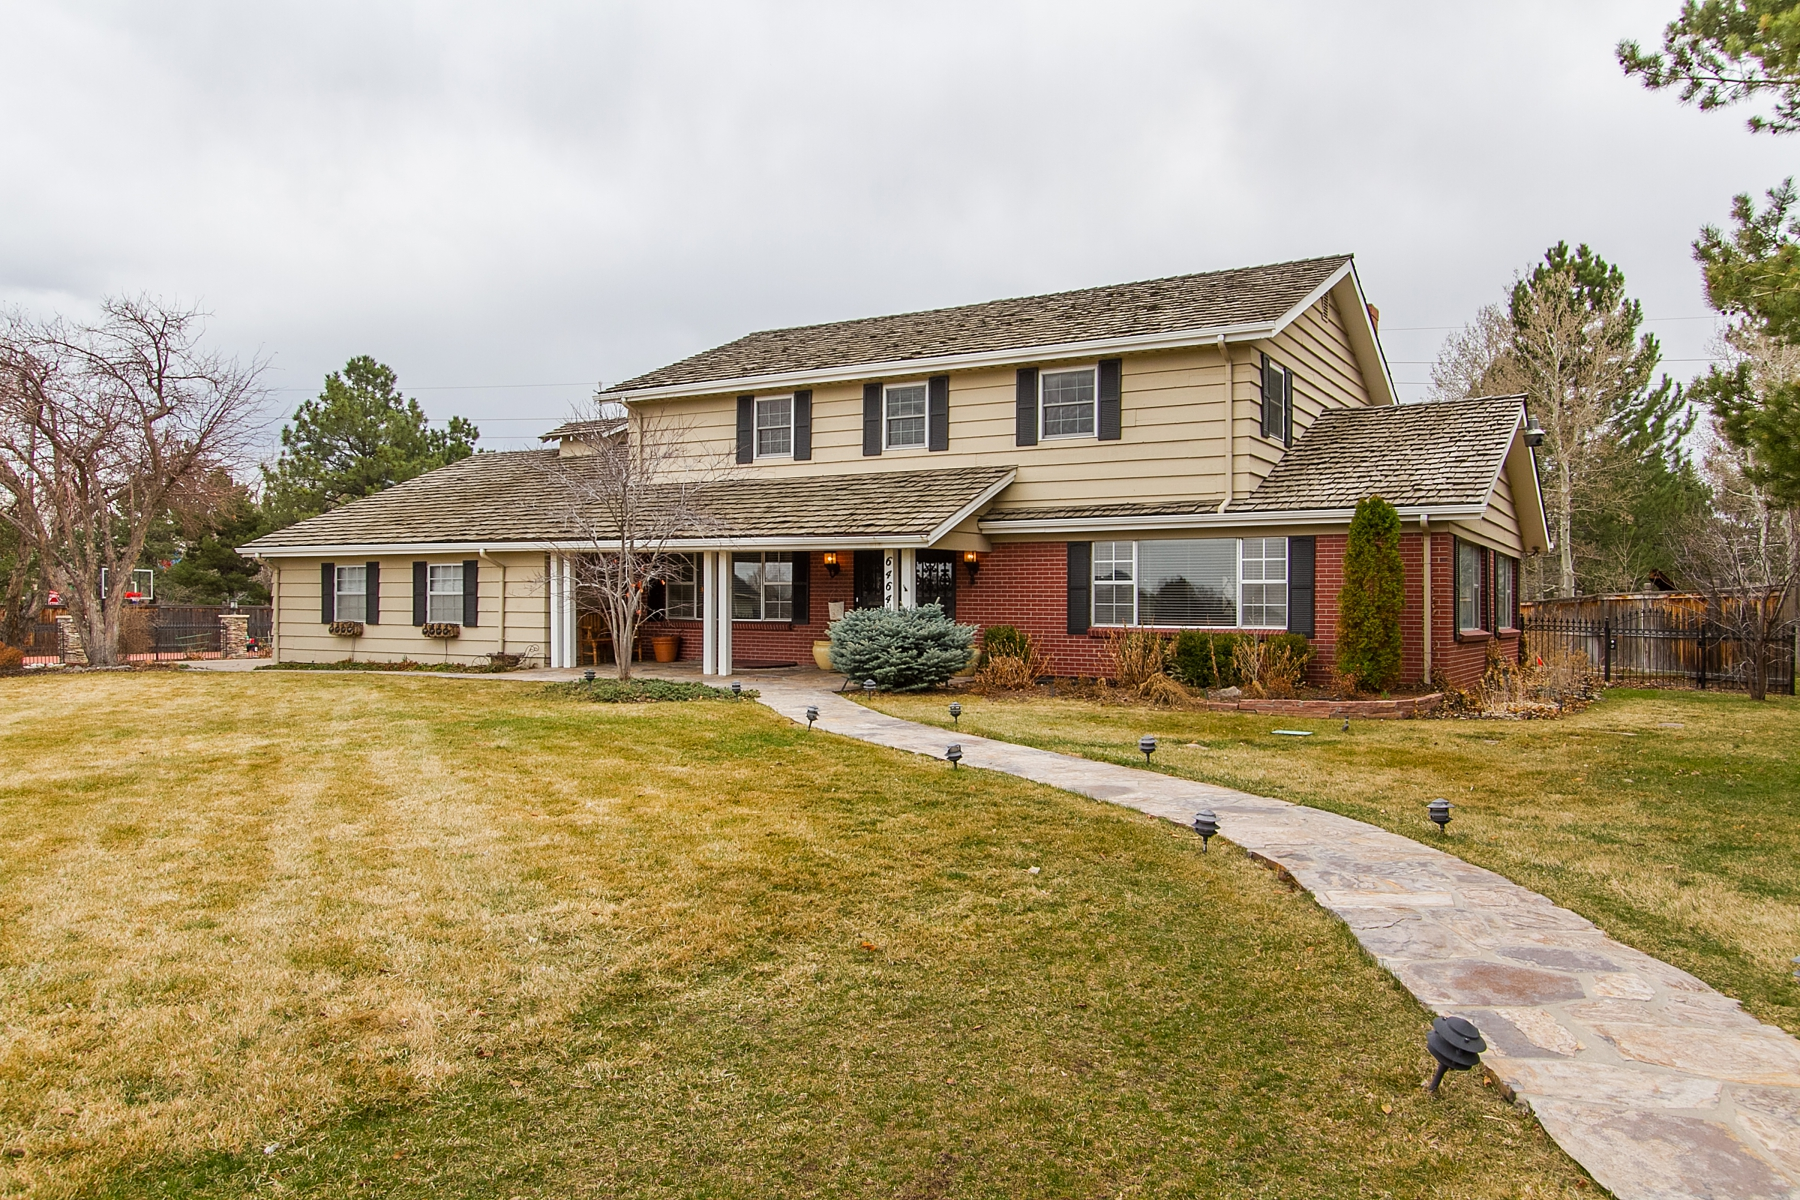 Single Family Home for Sale at Beautiful Cherry Hills Home on over half an acre! 6464 S Happy Canyon Rd Cherry Hills Village, Colorado 80111 United States